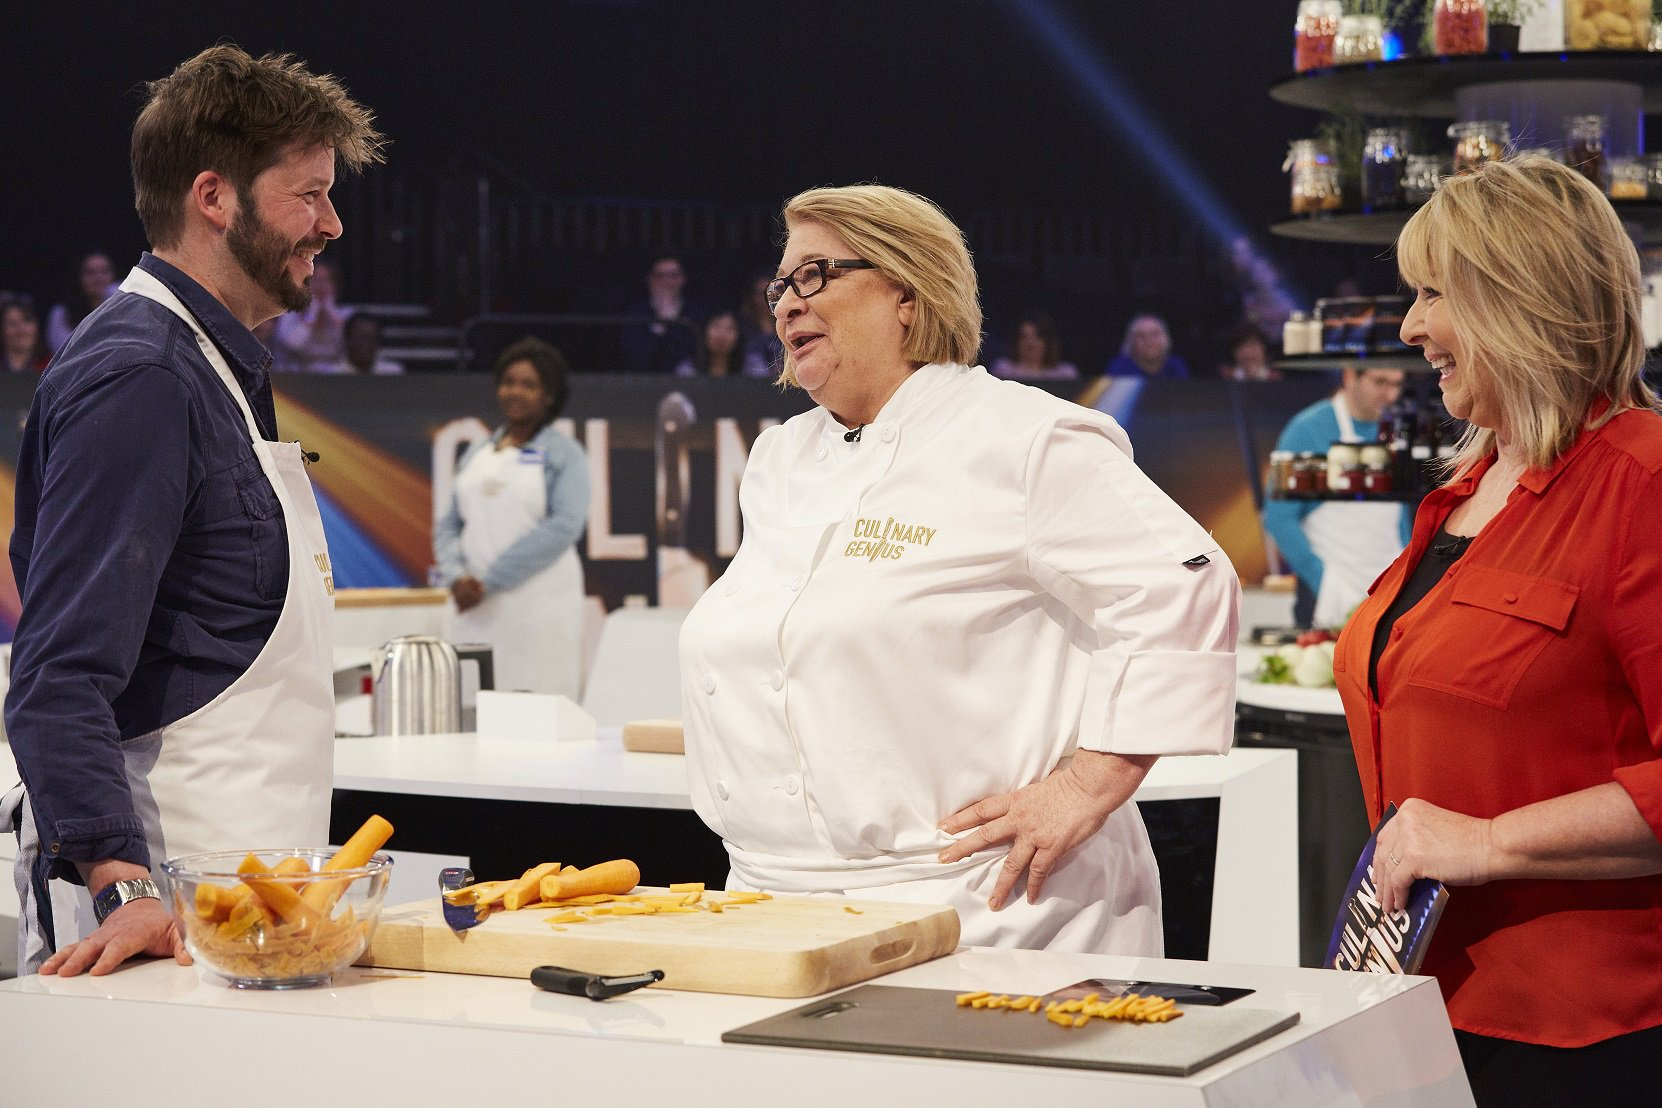 Excited for a brand new episode of #CulinaryGenius @ITV at 3 PM today ! https://t.co/Y6V3rP9vfu